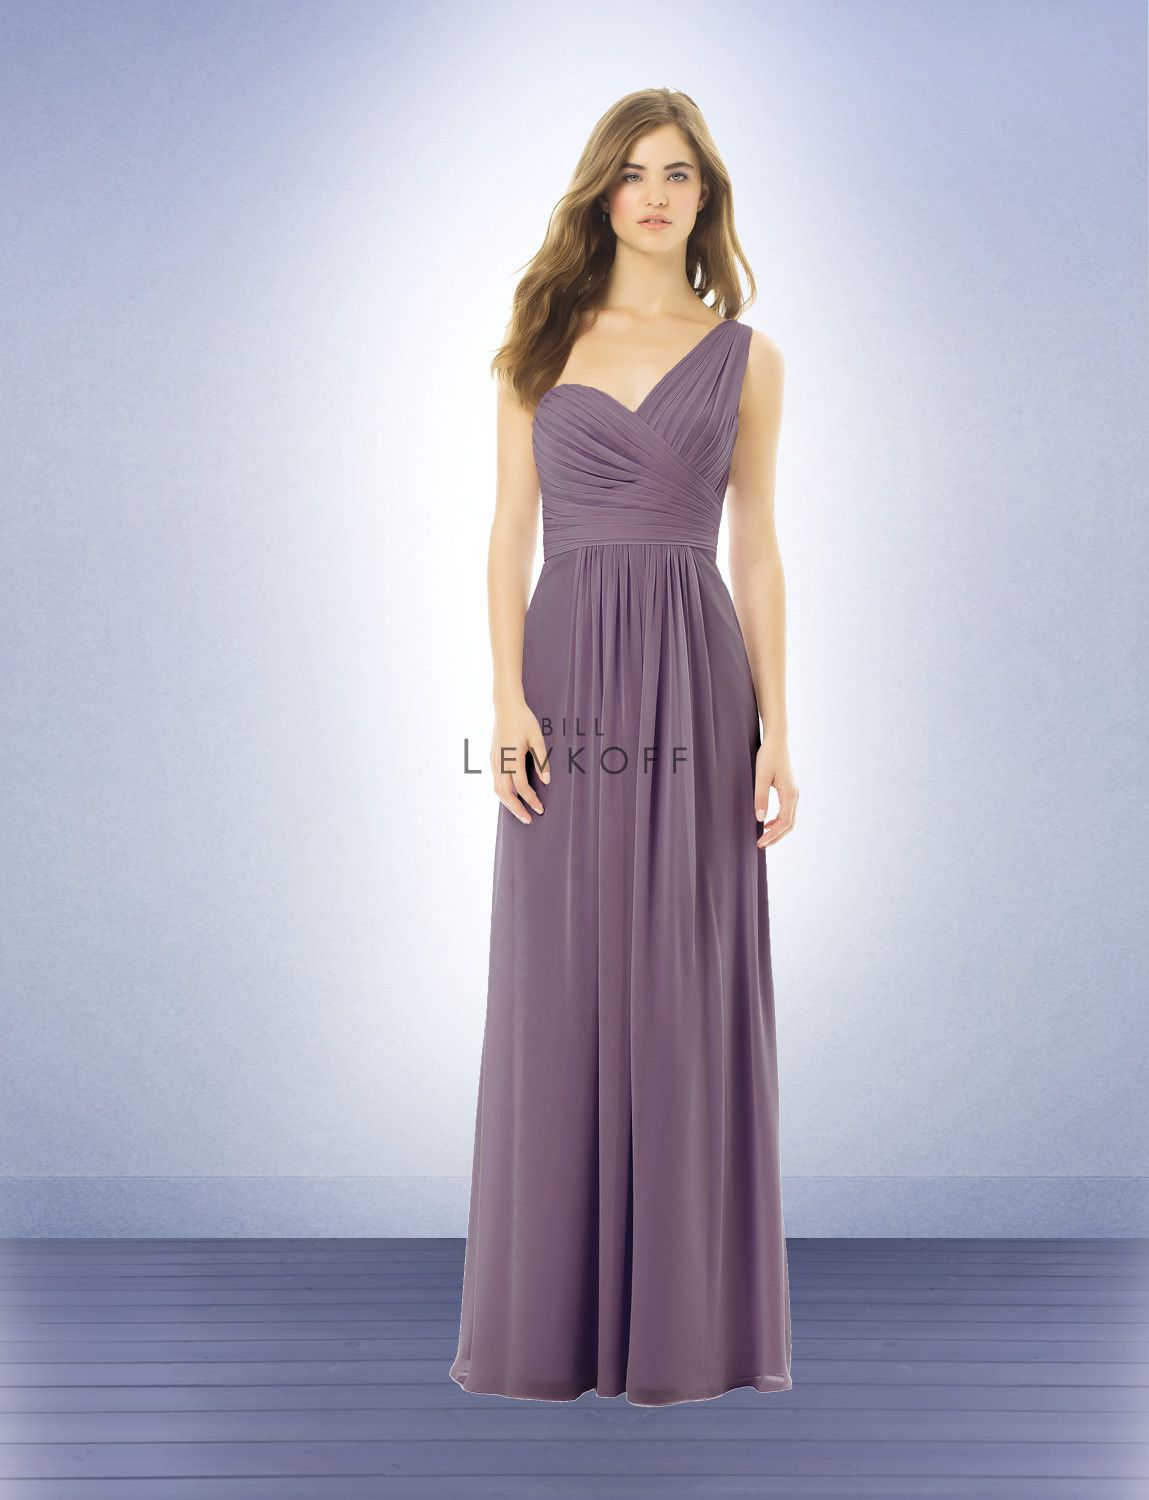 Bill levkoff 492 chiffon gown with one wide shoulder strap bridesmaid dress style 492 bridesmaid dresses by bill levkoff store sample in victorian lilac size chiffon gown with one wide shoulder strap ombrellifo Gallery